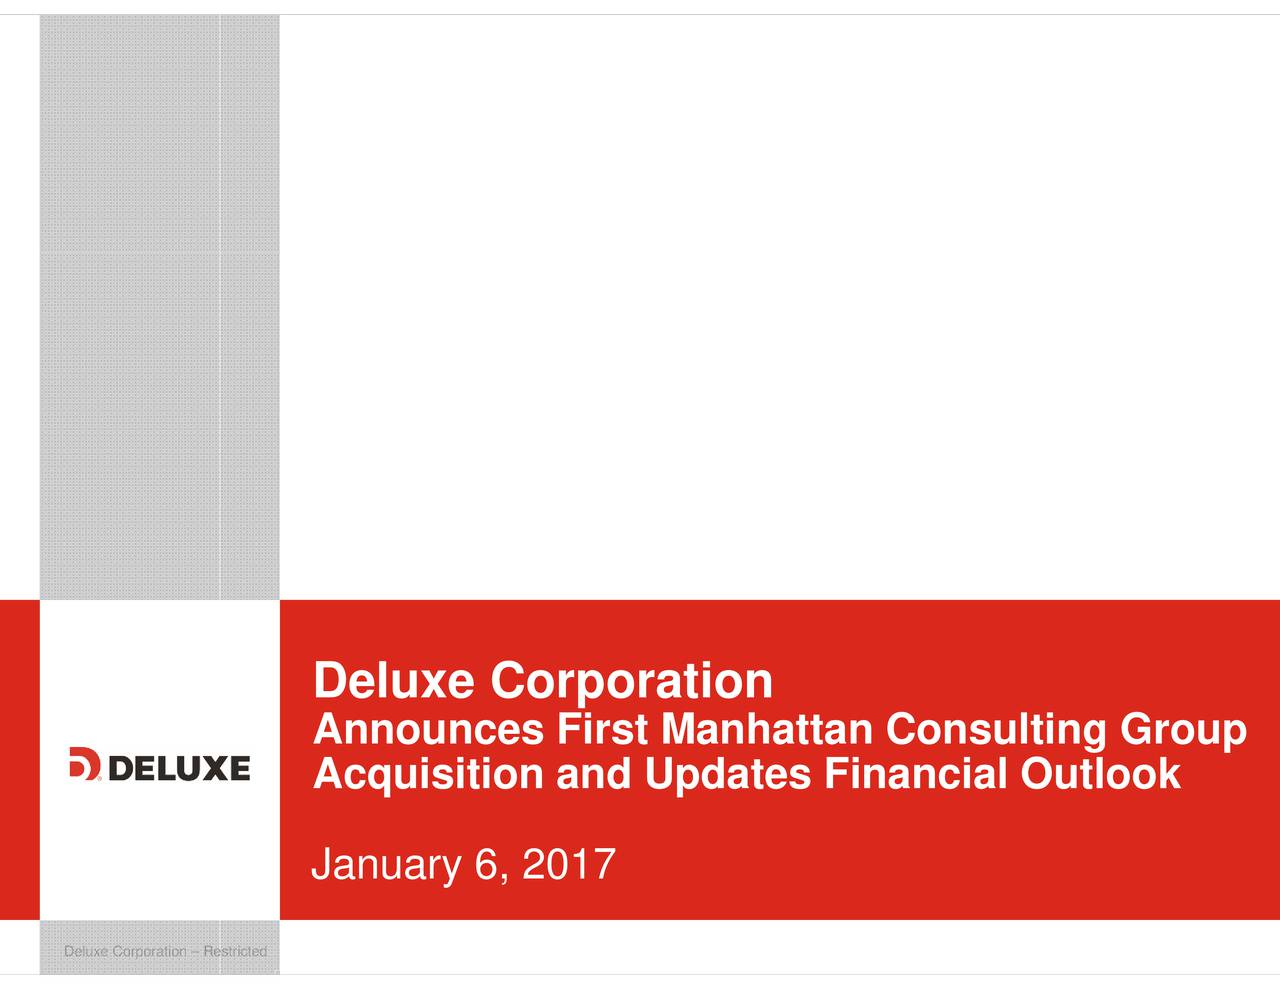 Deluxe (DLX) Acquires First Manhattan Consulting Group - M&A Call ...